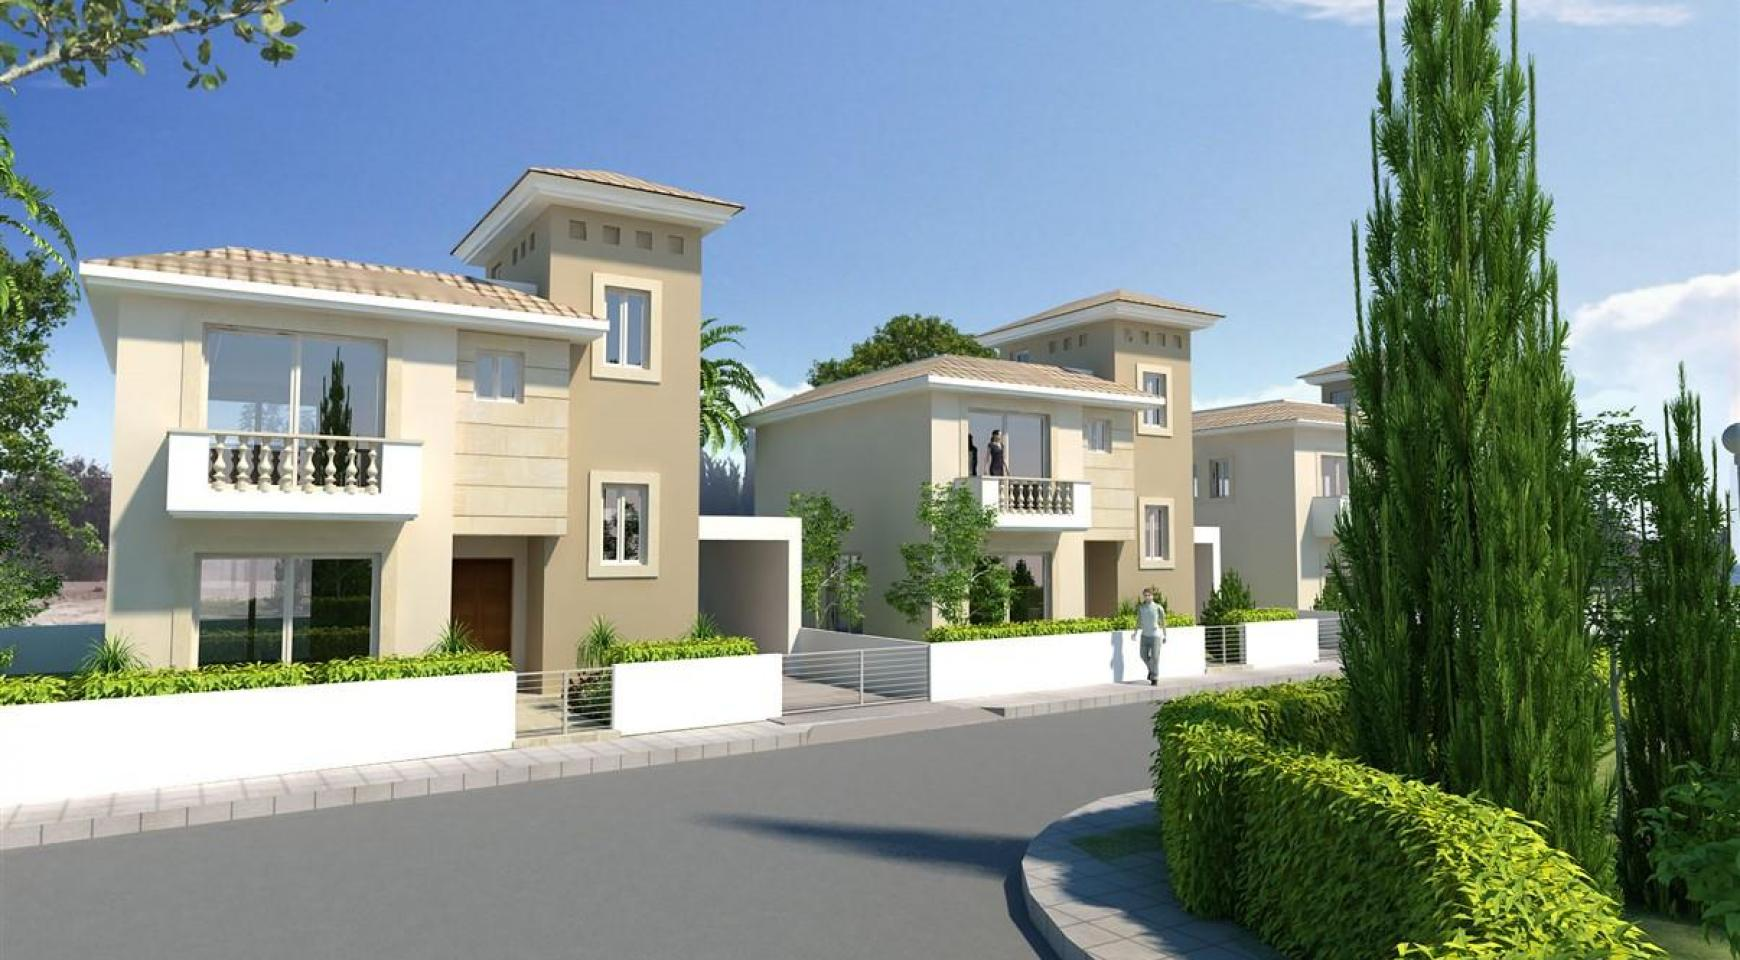 3 Bedroom Villa in New Project in Paphos - 23